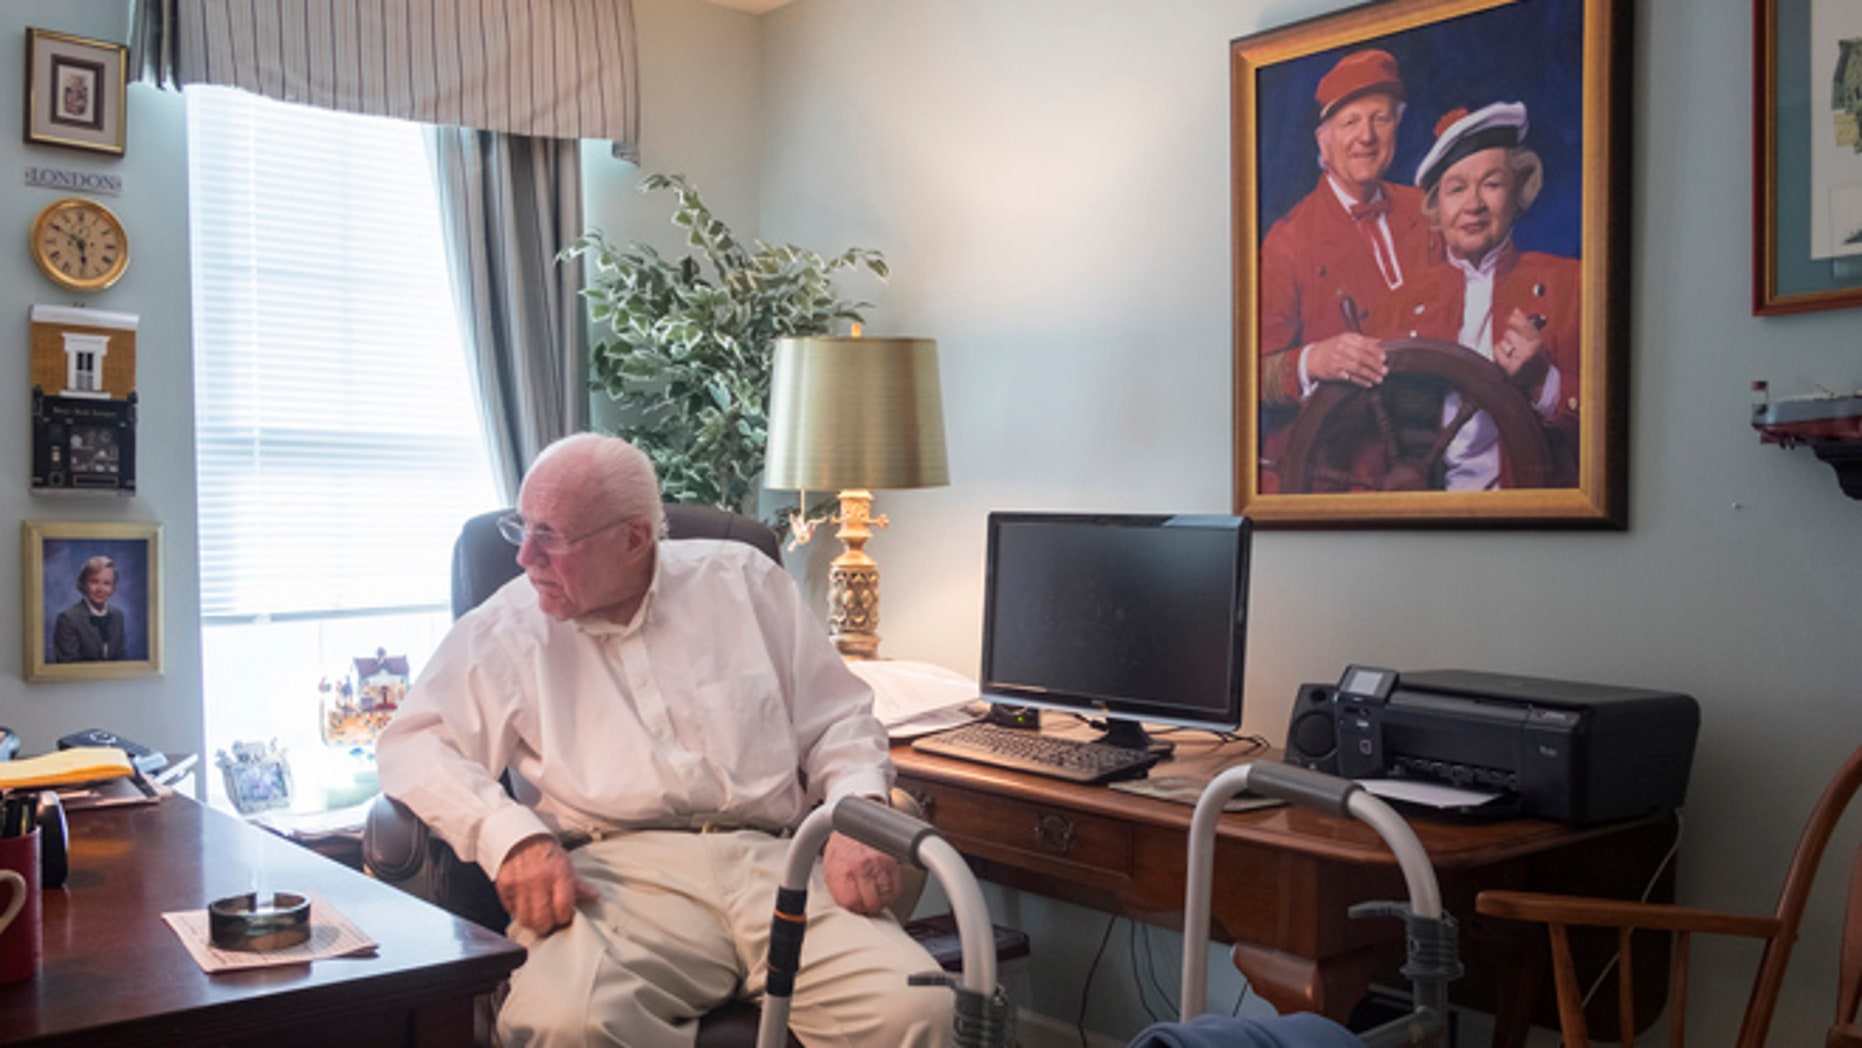 """This March 3, 2016, photo shows a portrait of W. Carter Merbreier, surrounded by a lifetime of memories in his home in Audubon, Pa. Merbreier helmed beloved Philadelphia children's TV show """"Captain Noah and his Magical Ark"""" for 27 years. He died Tuesday, Aug. 9, at age 90. (Ed Hille/The Philadelphia Inquirer via AP)"""